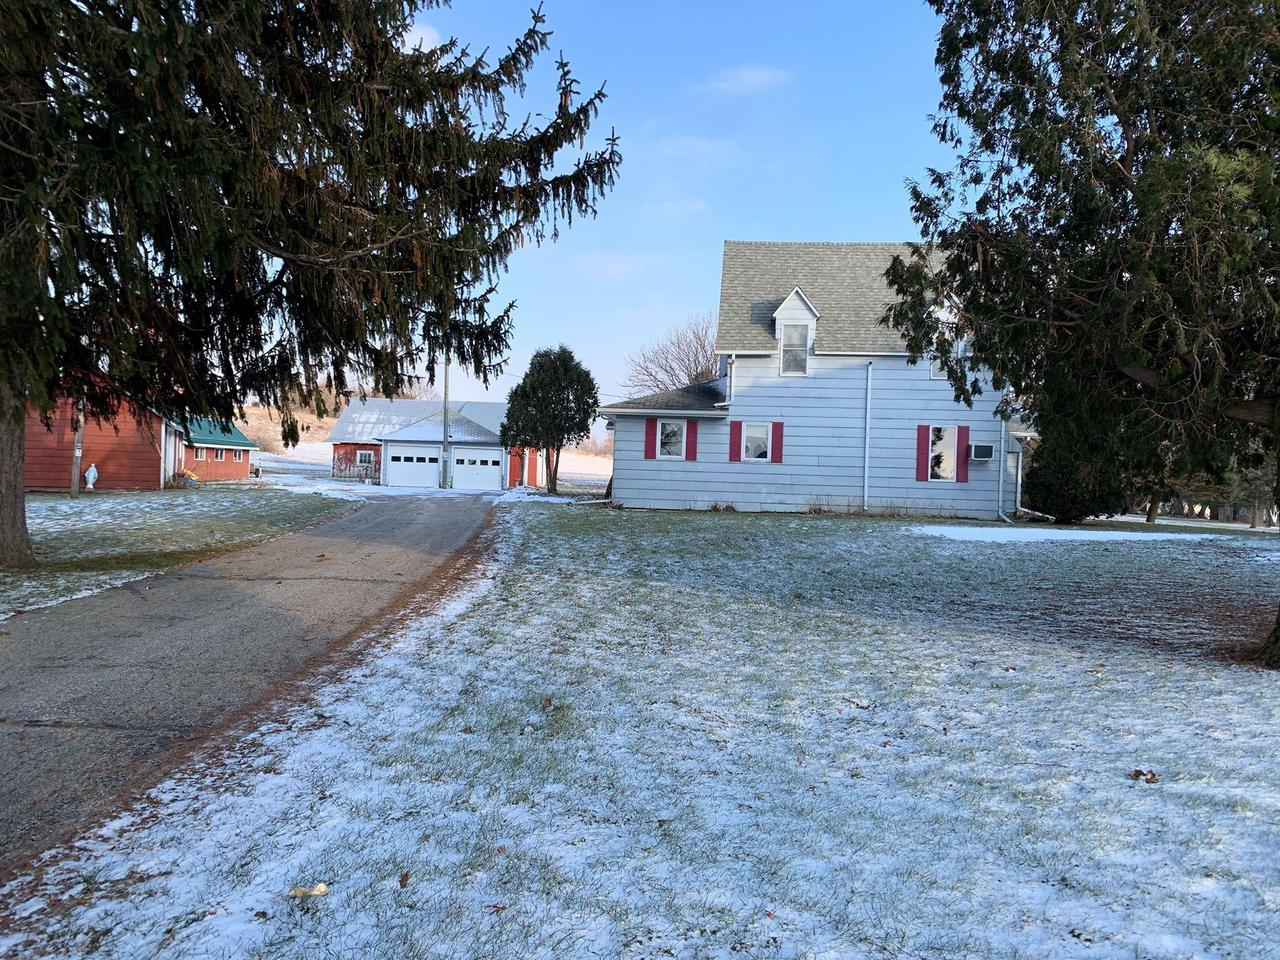 Hard to find hobby farm that has it all, located on 34.630 acres 15 minutes from Viroqua. Hunting land, pasture, land for cash crop, beautiful yard w/shade tree. Buildings include 30x50 barn with box stalls, 14x22 shop or poultry house, tobacco shed & 16x28 machine shed, 20x24 2 car detached garage.House is spacious w/main floor master bedroom & bath, tons of storage, large kitchen with counter space, familyroom, livingroom & mud room area w/possibility for main floor laundry. Exterior has 2 decks off house. Upper has walk-through area that could be used for family room/office, 2 good sized bedrooms with walk in closets.